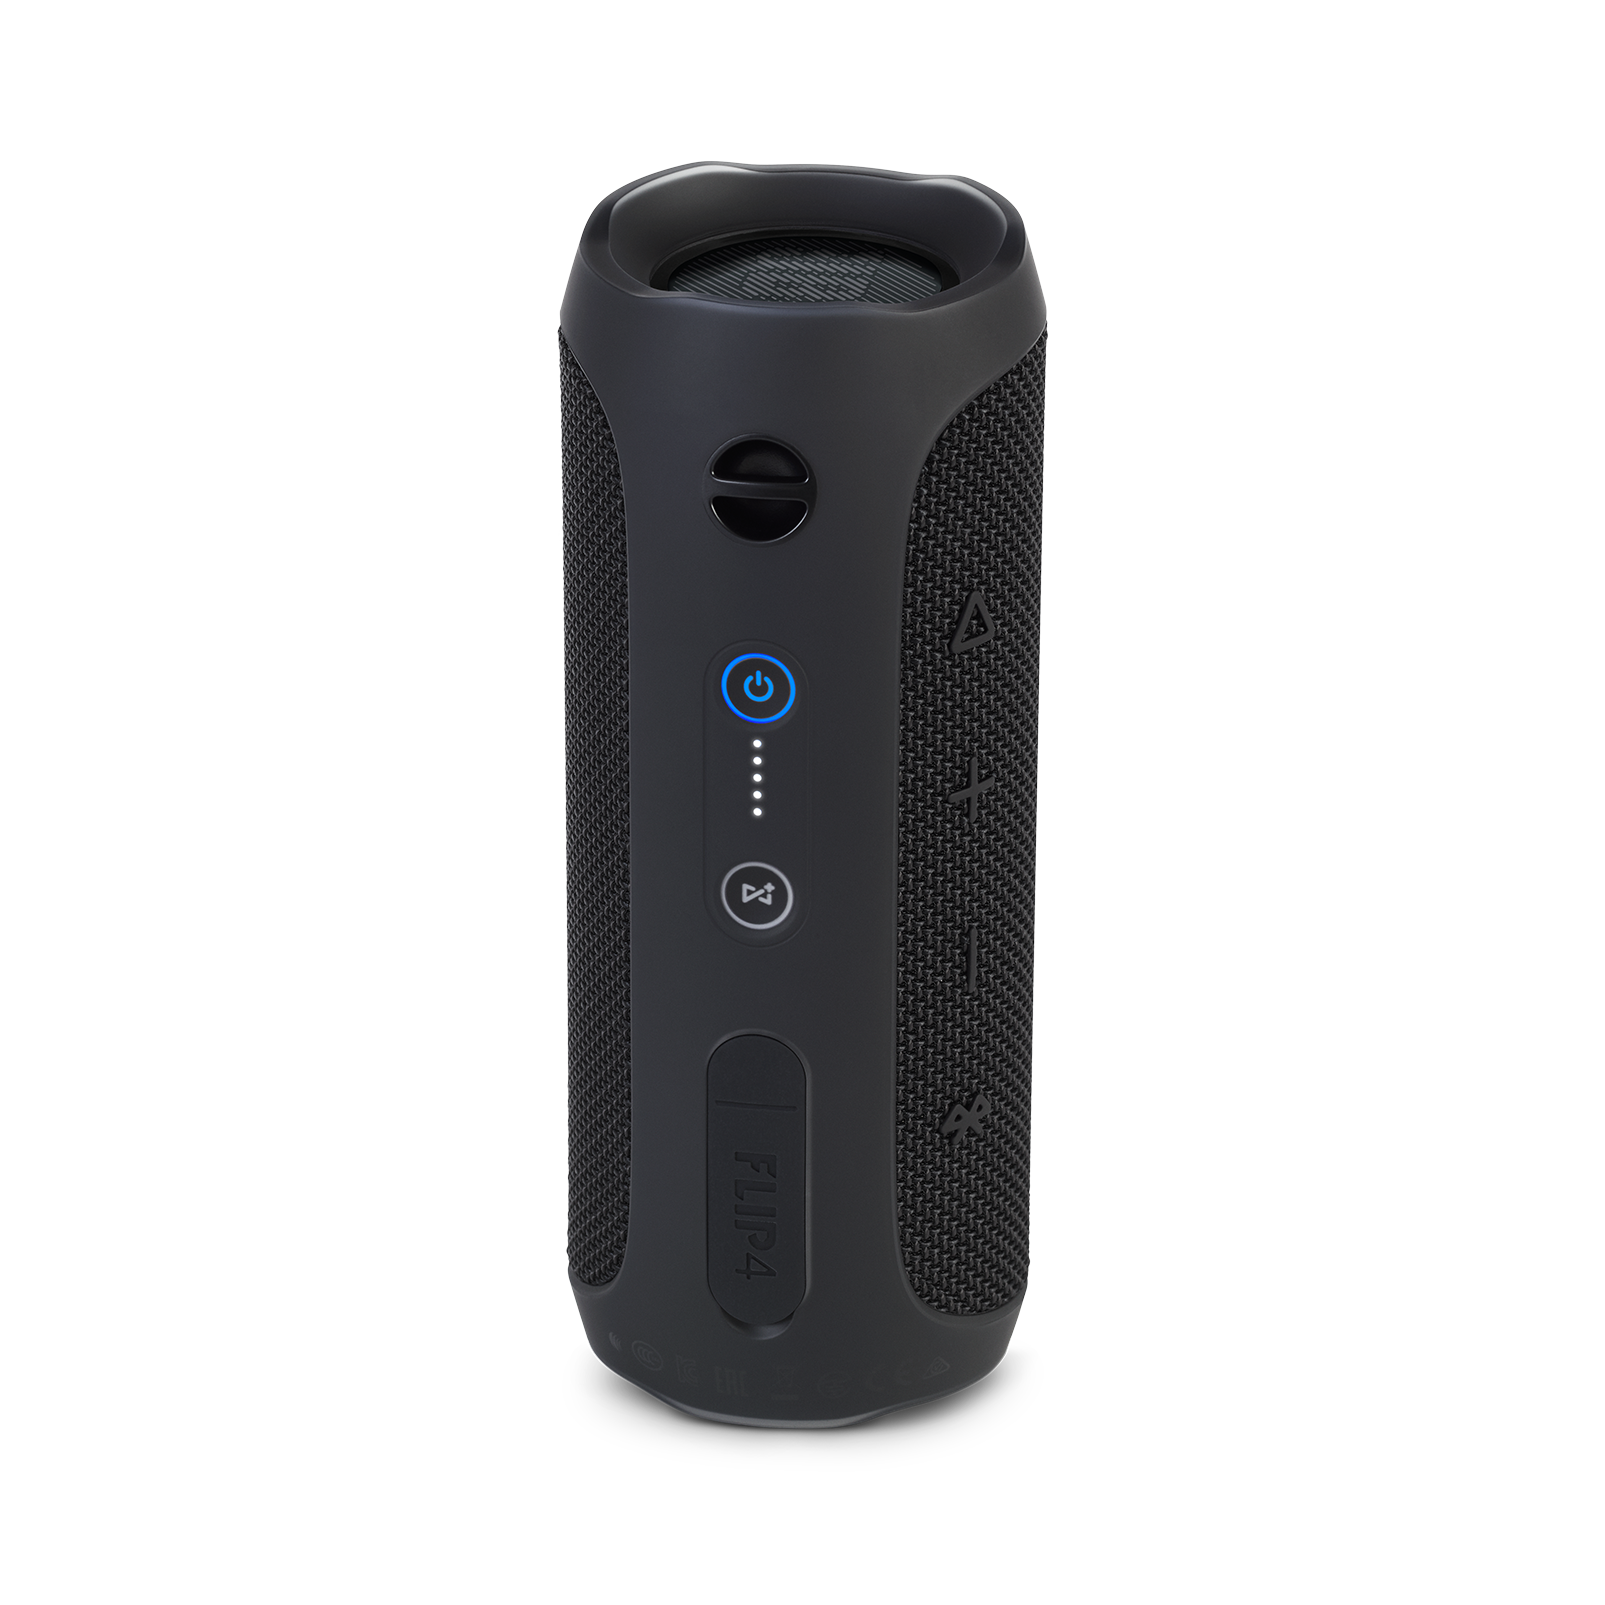 JBL Flip 4 - Black - A full-featured waterproof portable Bluetooth speaker with surprisingly powerful sound. - Back